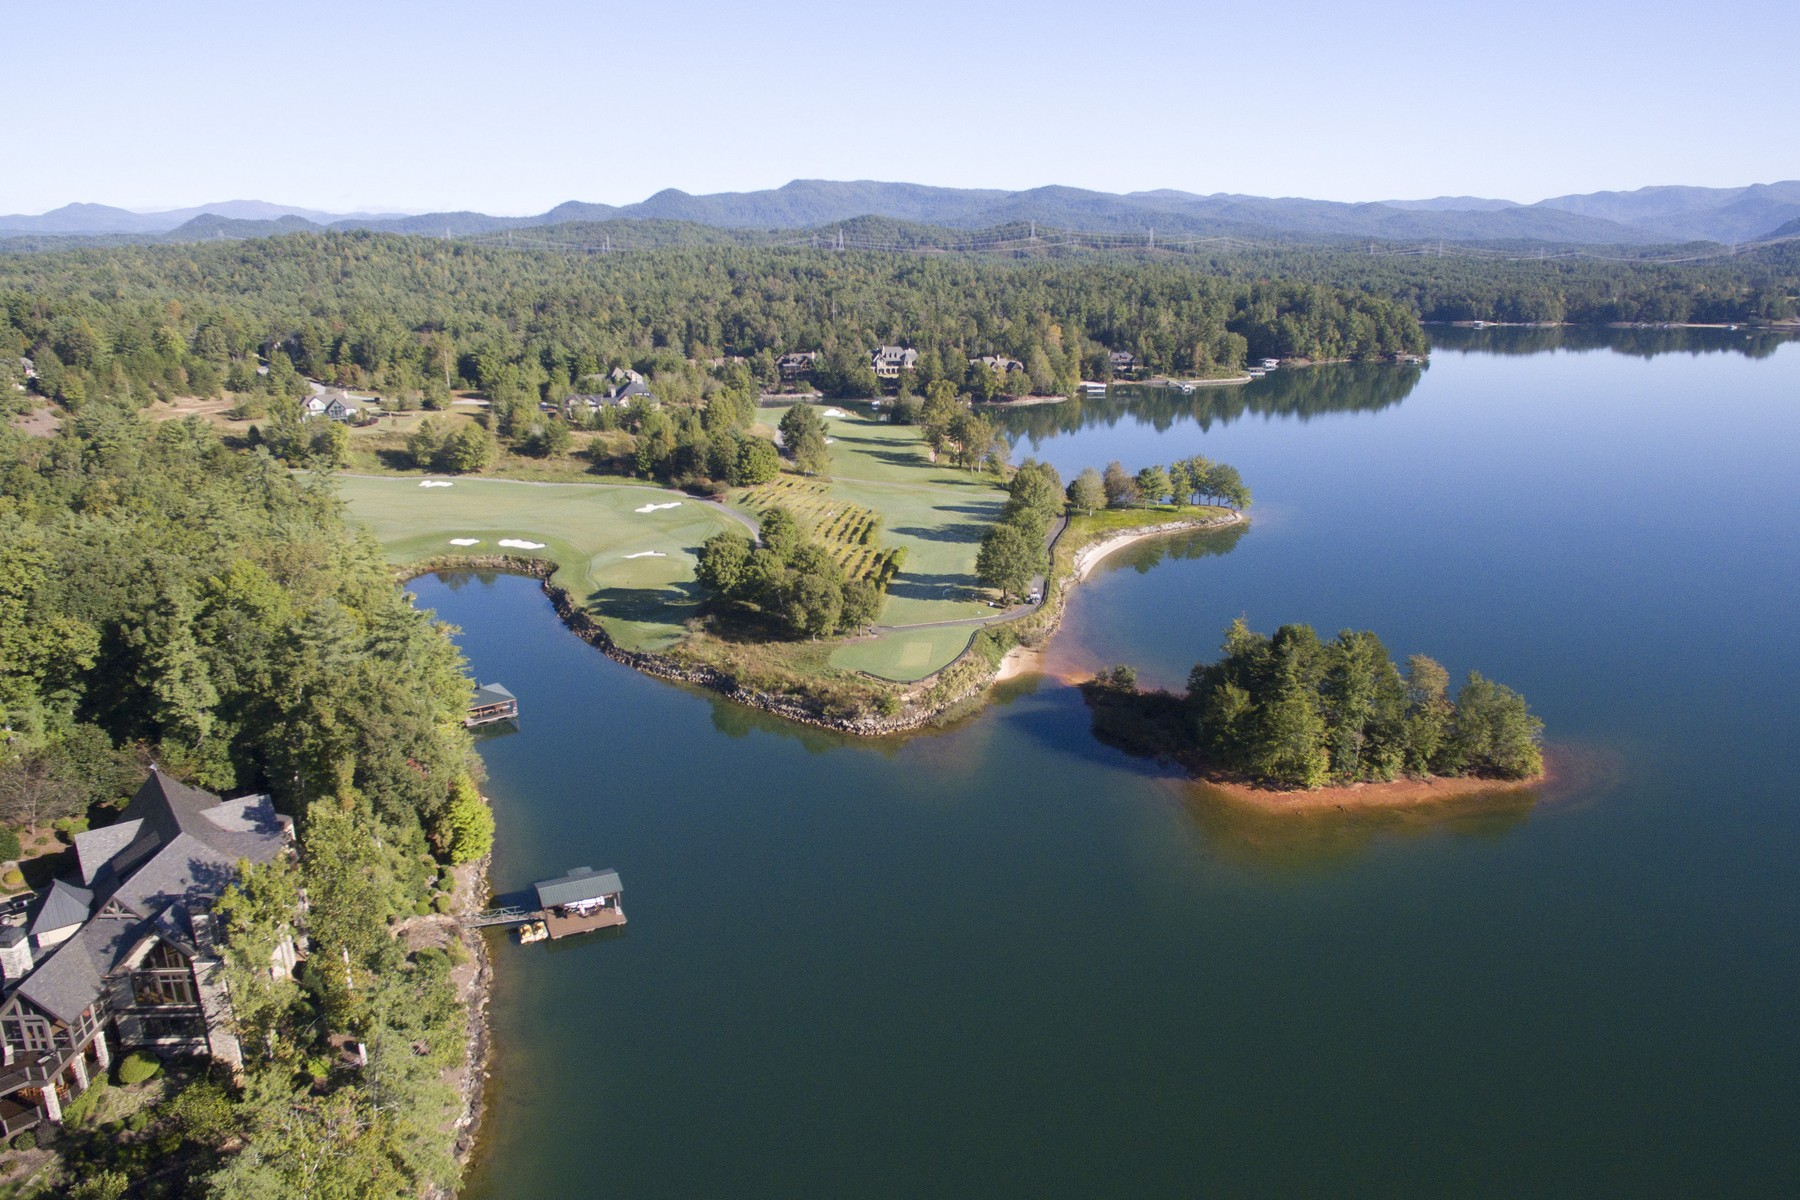 Single Family Home for Sale at Outstanding Lakeside Retreat With Breathtaking Views From a Superb Peninsula 107 Nine Bark Way Sunset, South Carolina 29685 United States